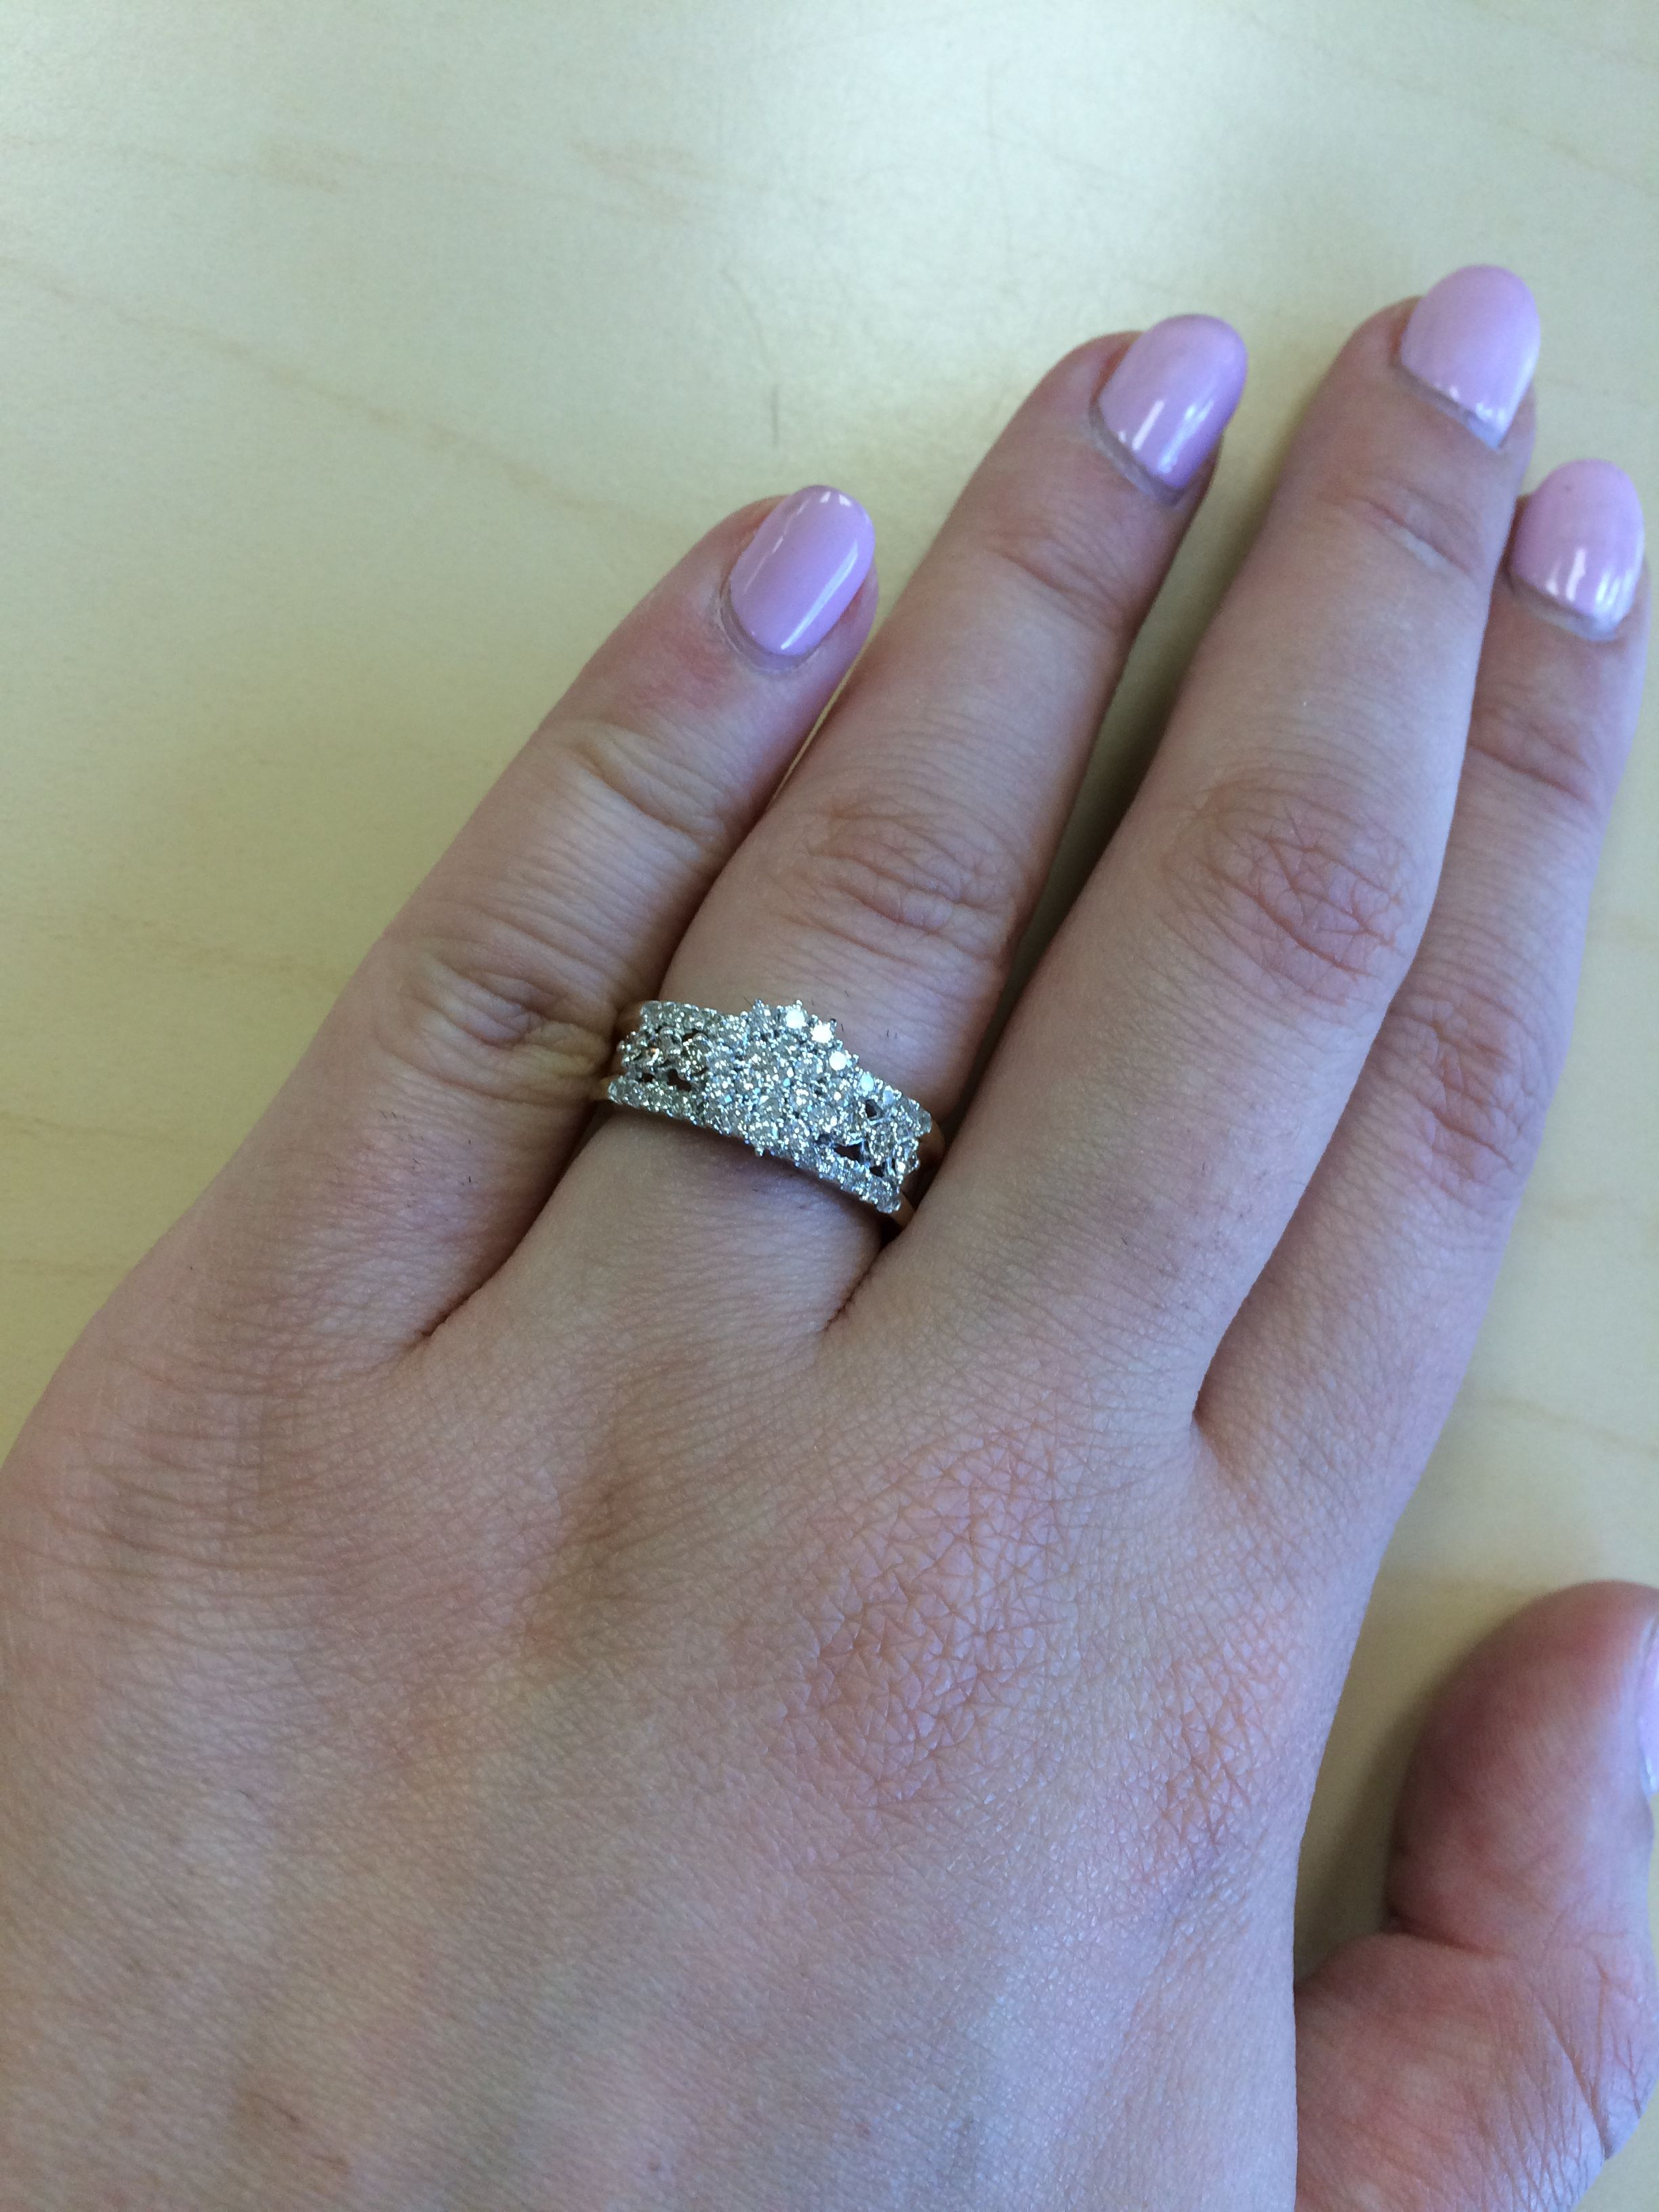 Rings on Hand Engagement Ring BT106WE. If she's the type